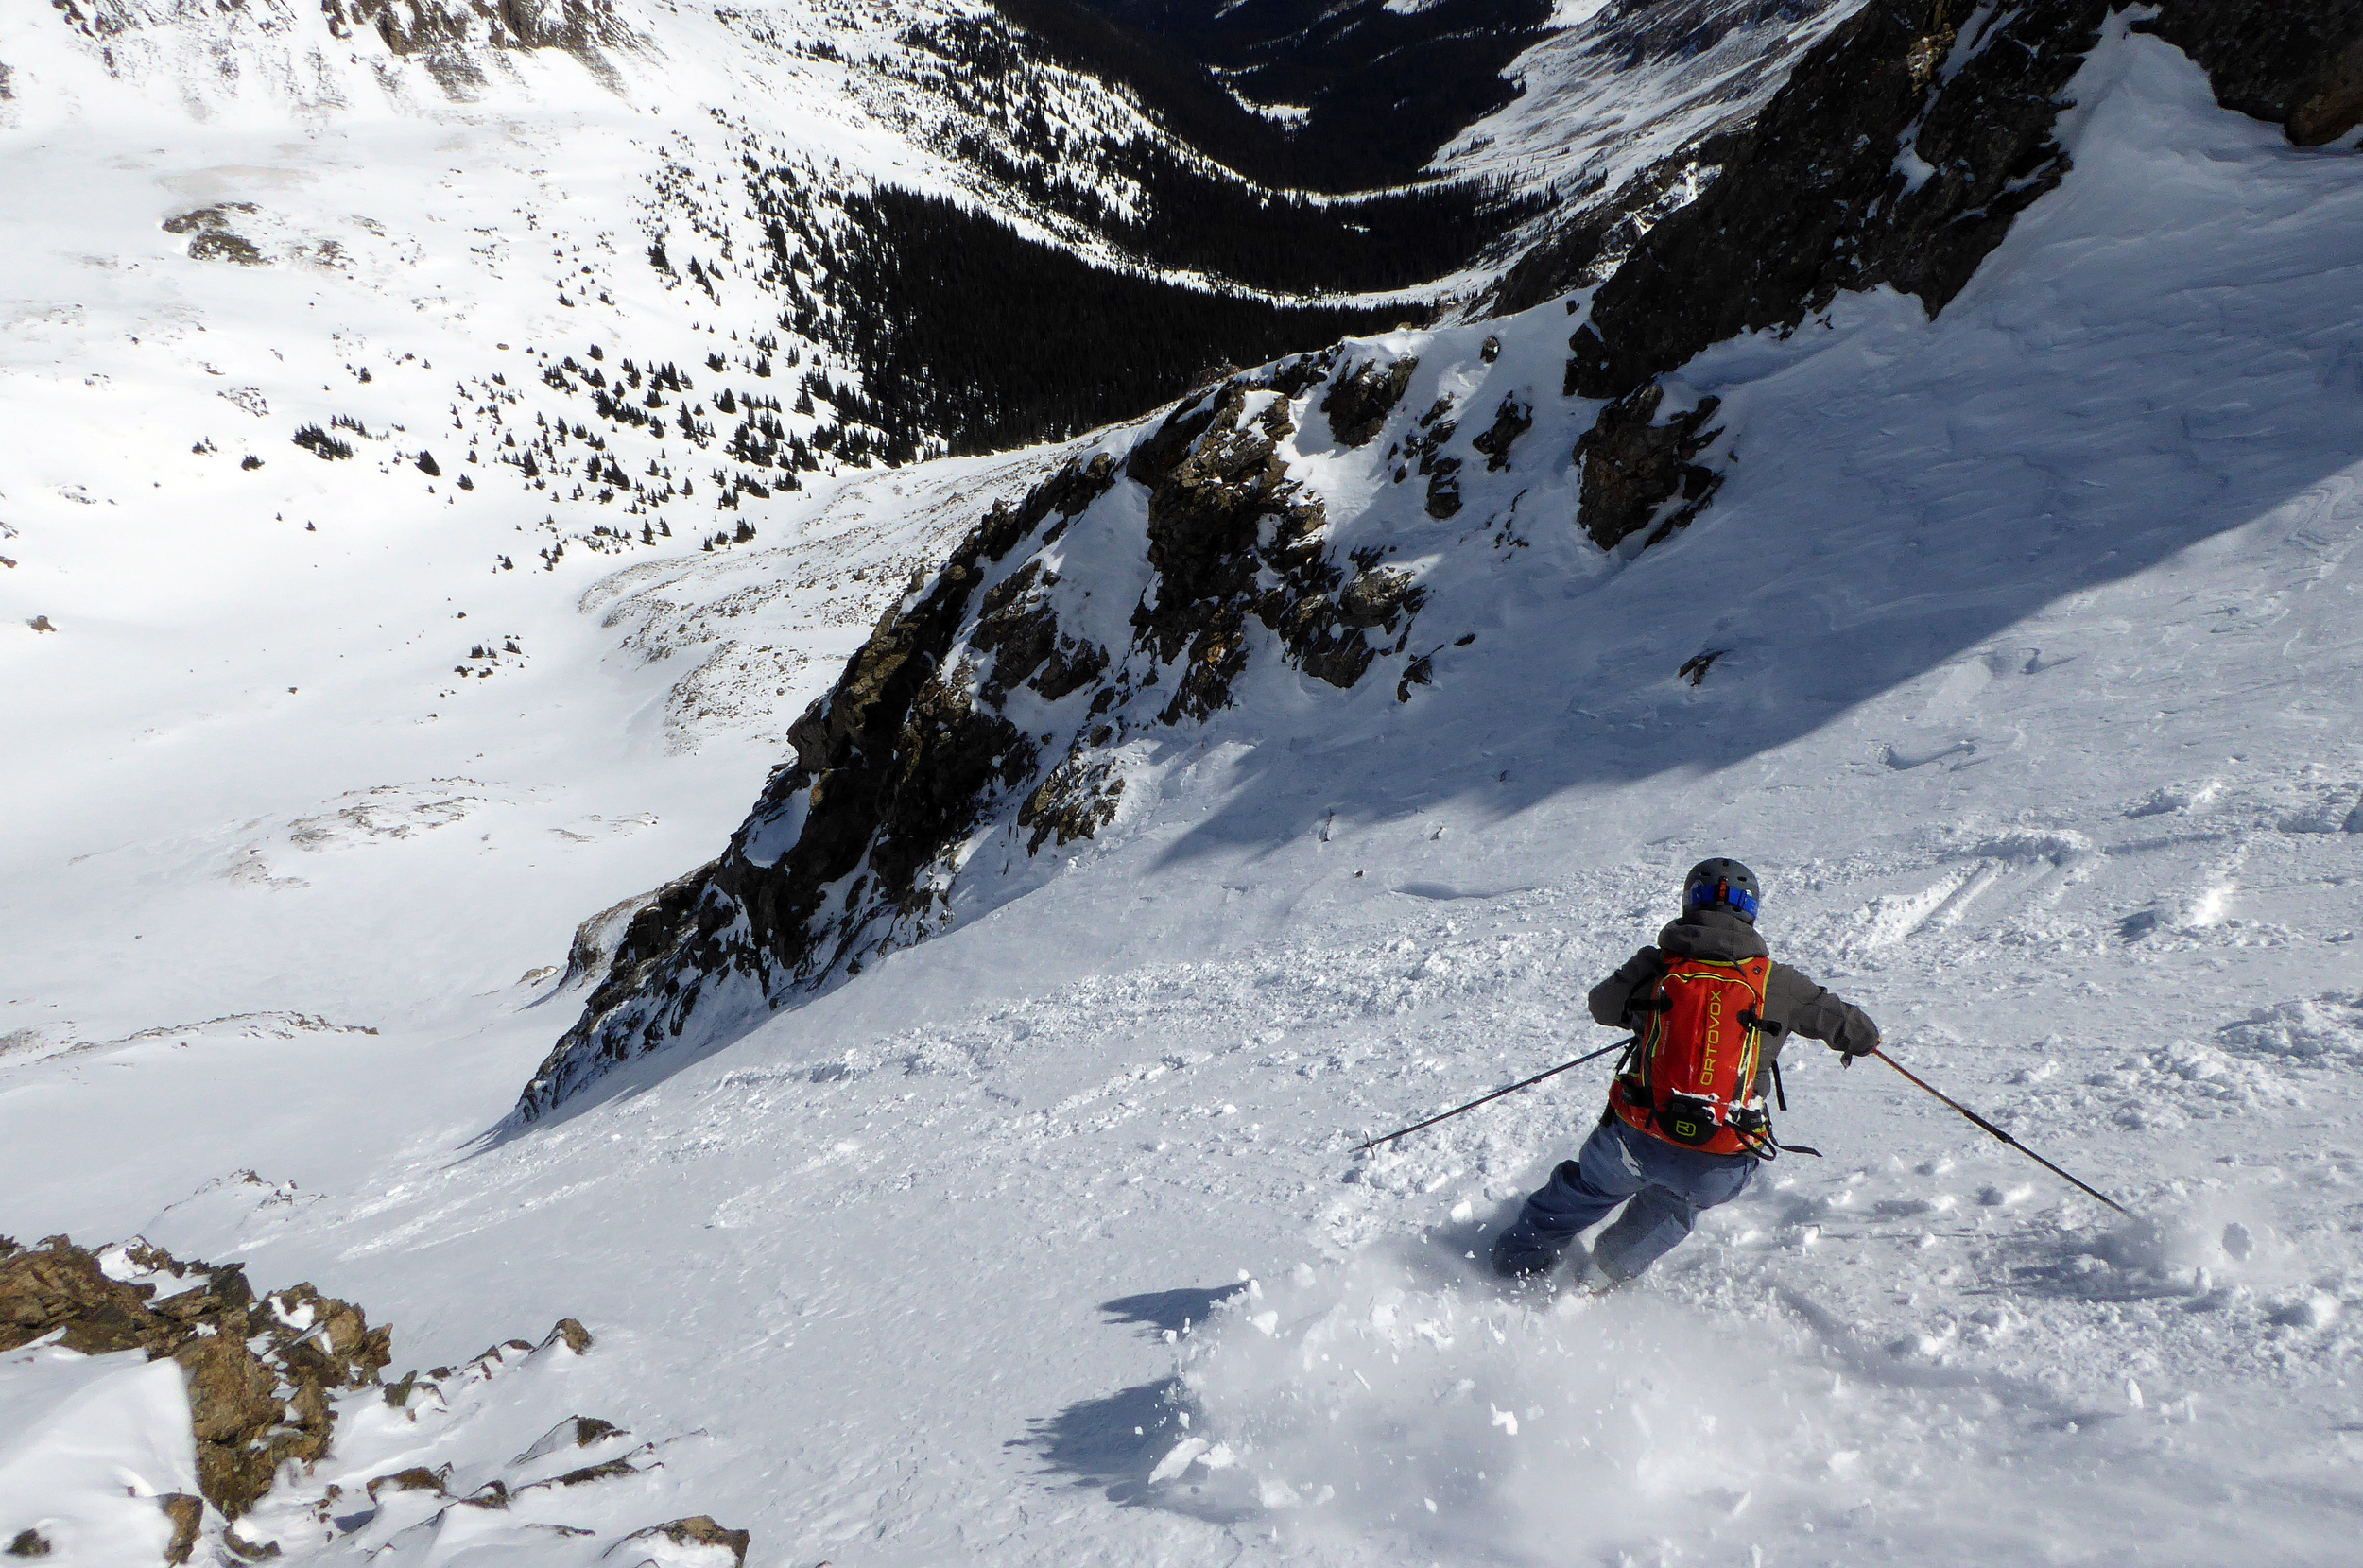 Skiing Grizzly's North Slope.